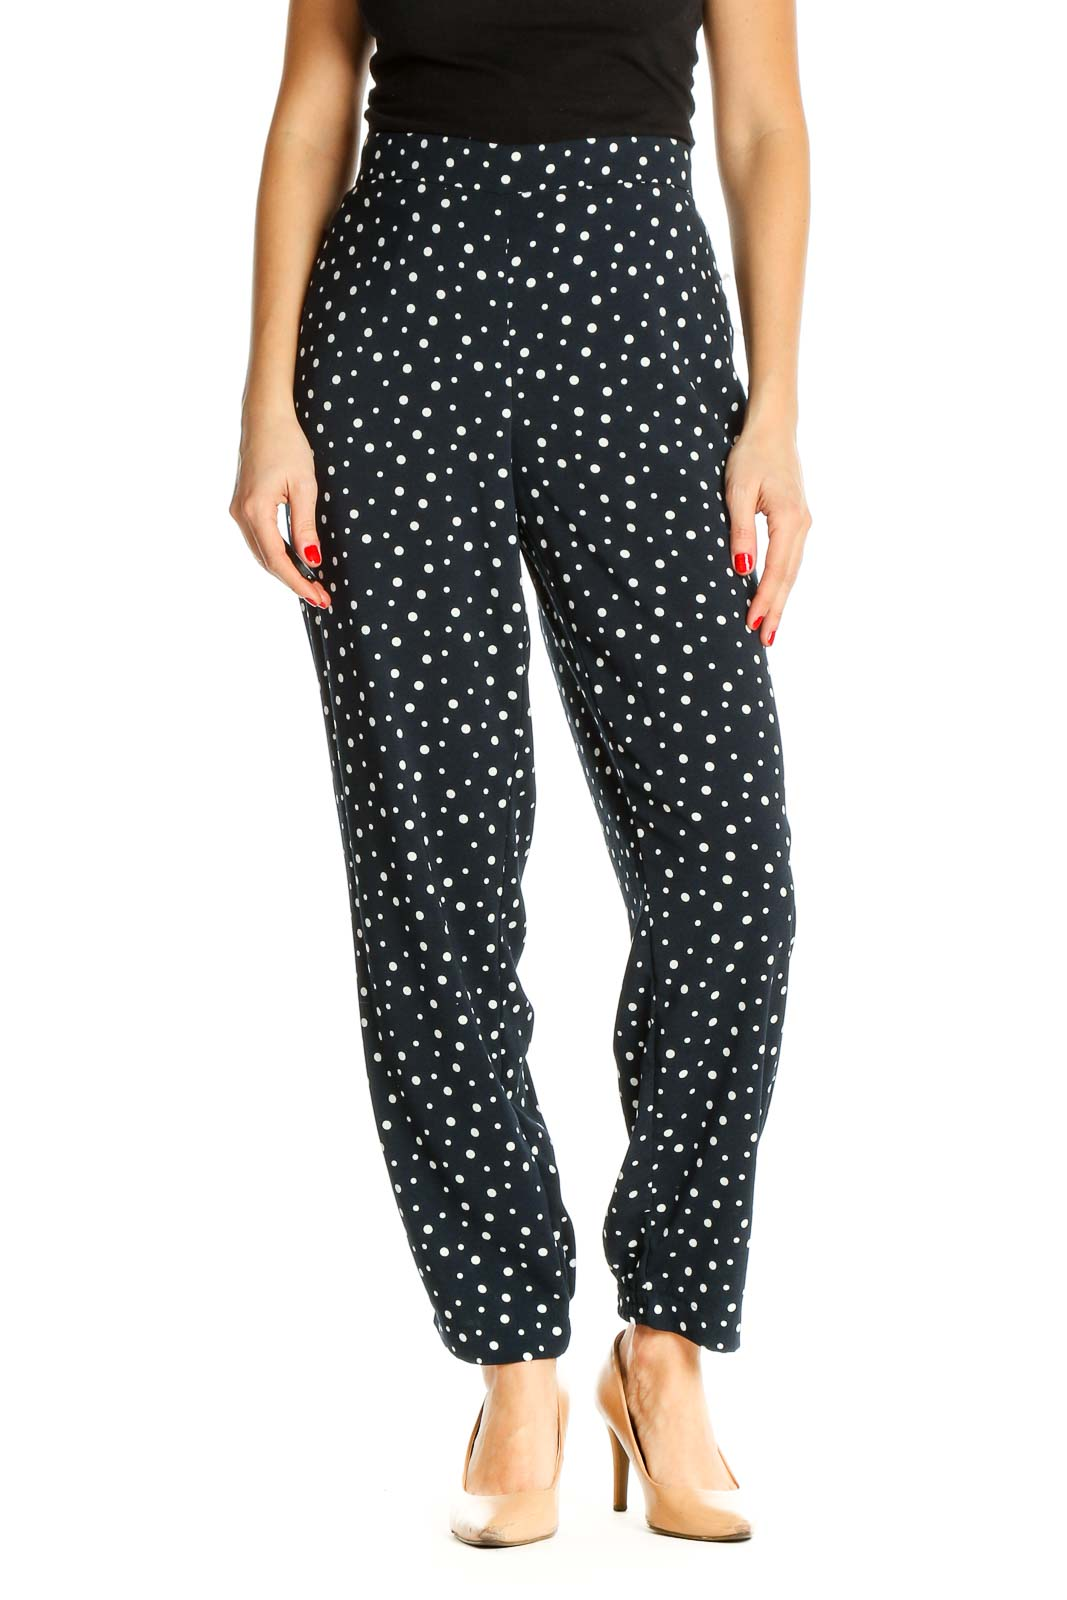 Blue Printed Retro Trousers Front